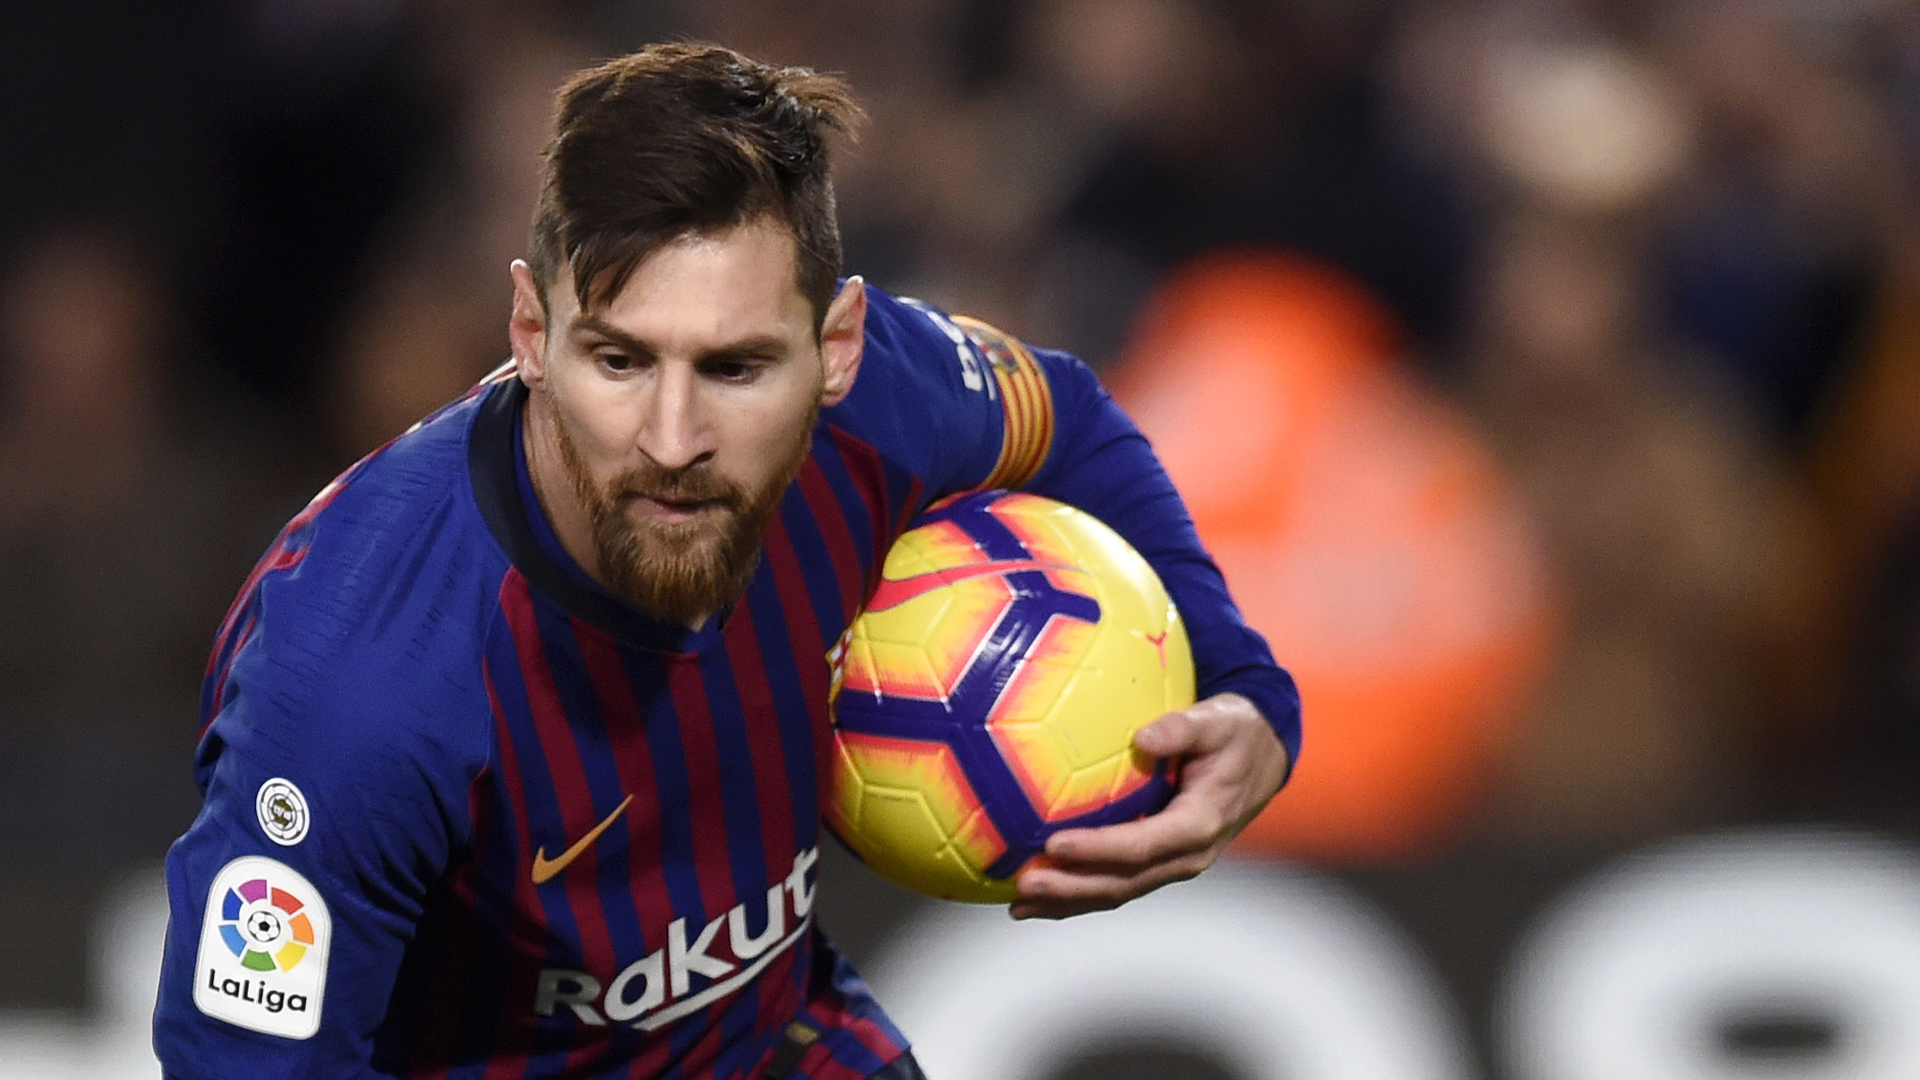 Barcelona won't take Lionel Messi 'risks' despite Copa del Rey squad inclusion